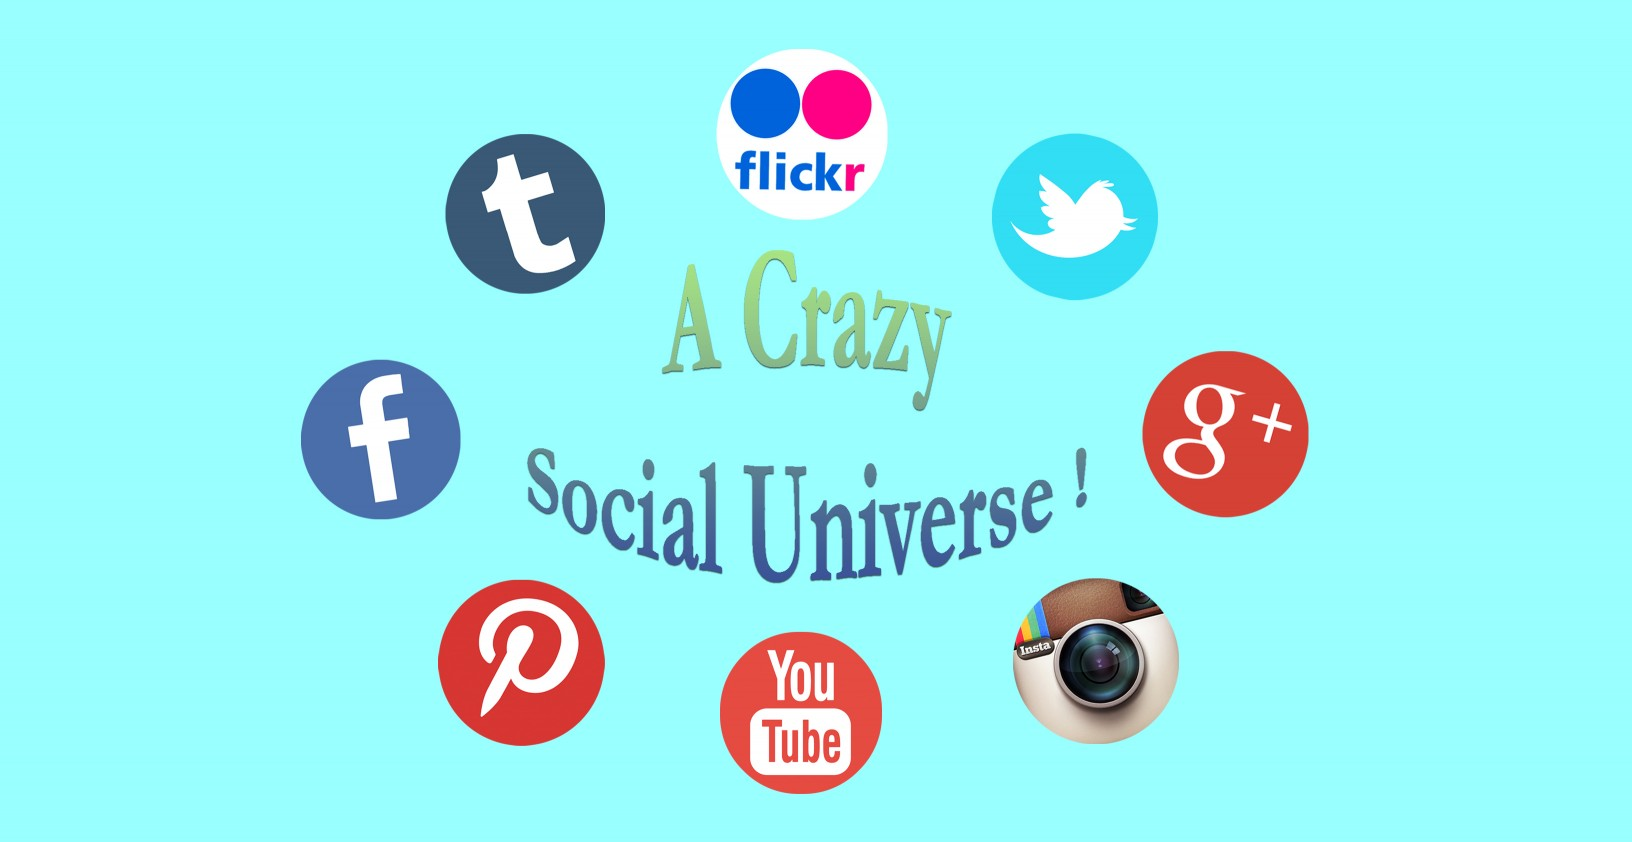 An Ode To Our Crazy Social Universe